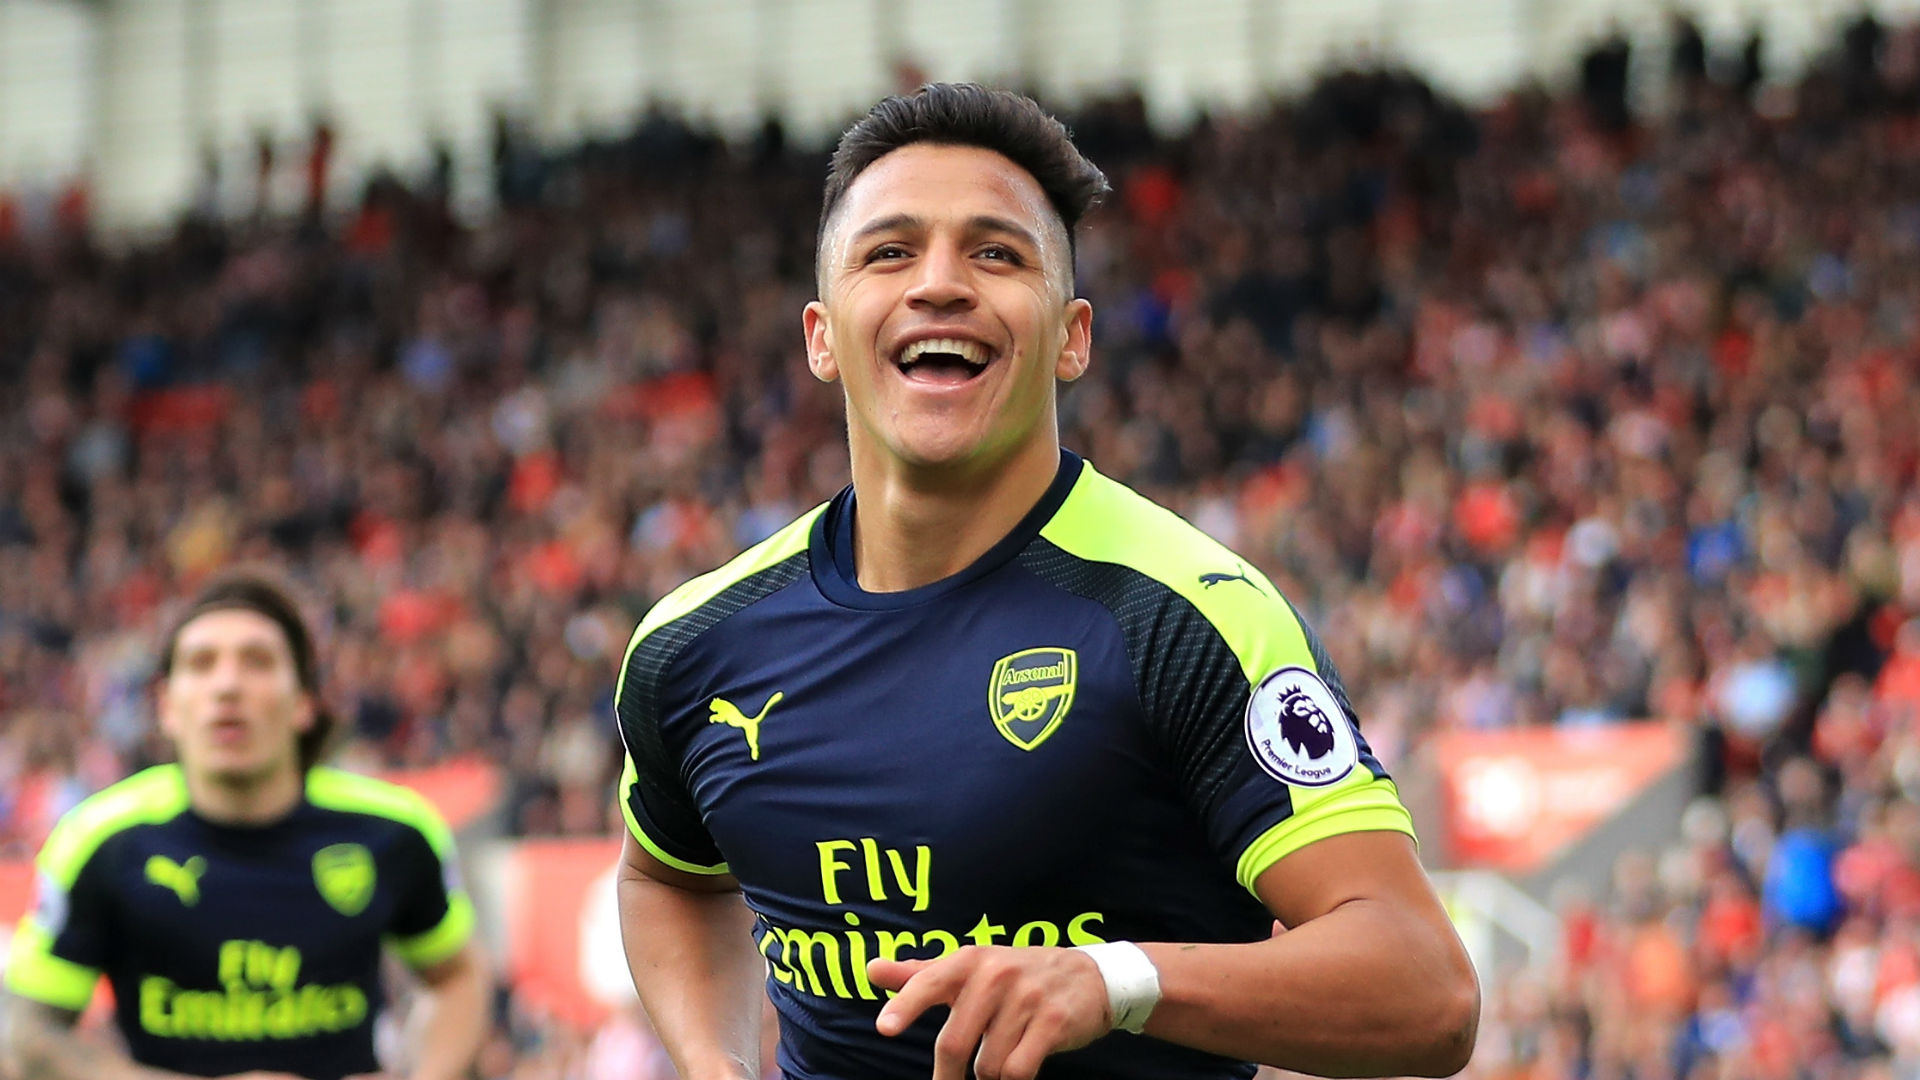 EPL: Alexis Sanchez shines as Arsenal beat Sunderland